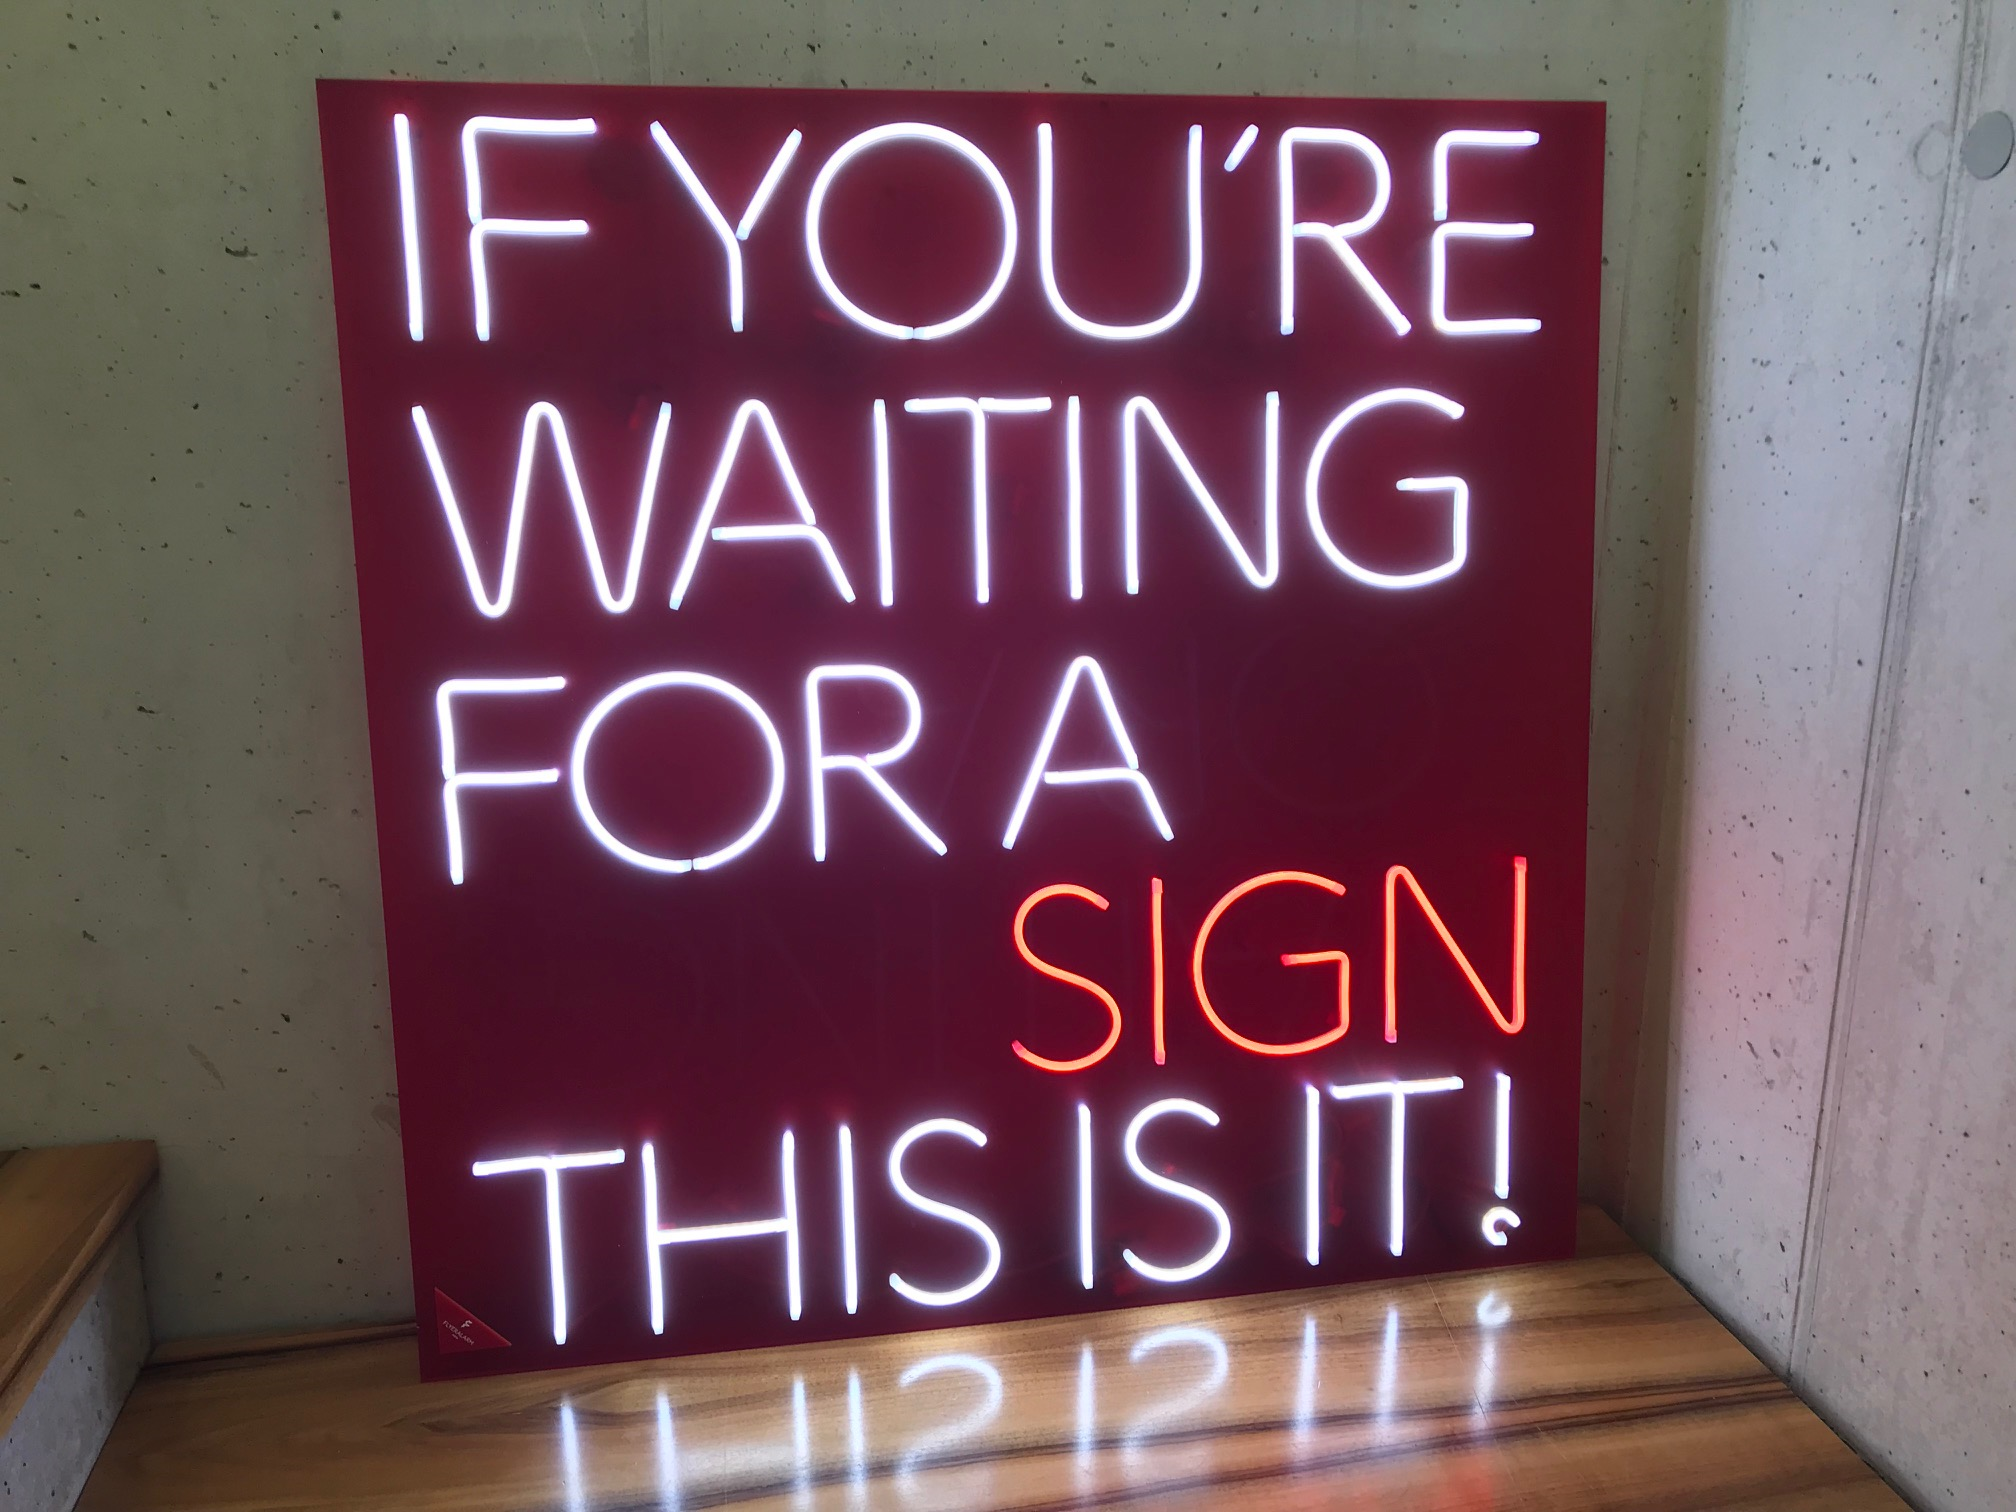 if you're waiting for a sign this is it!